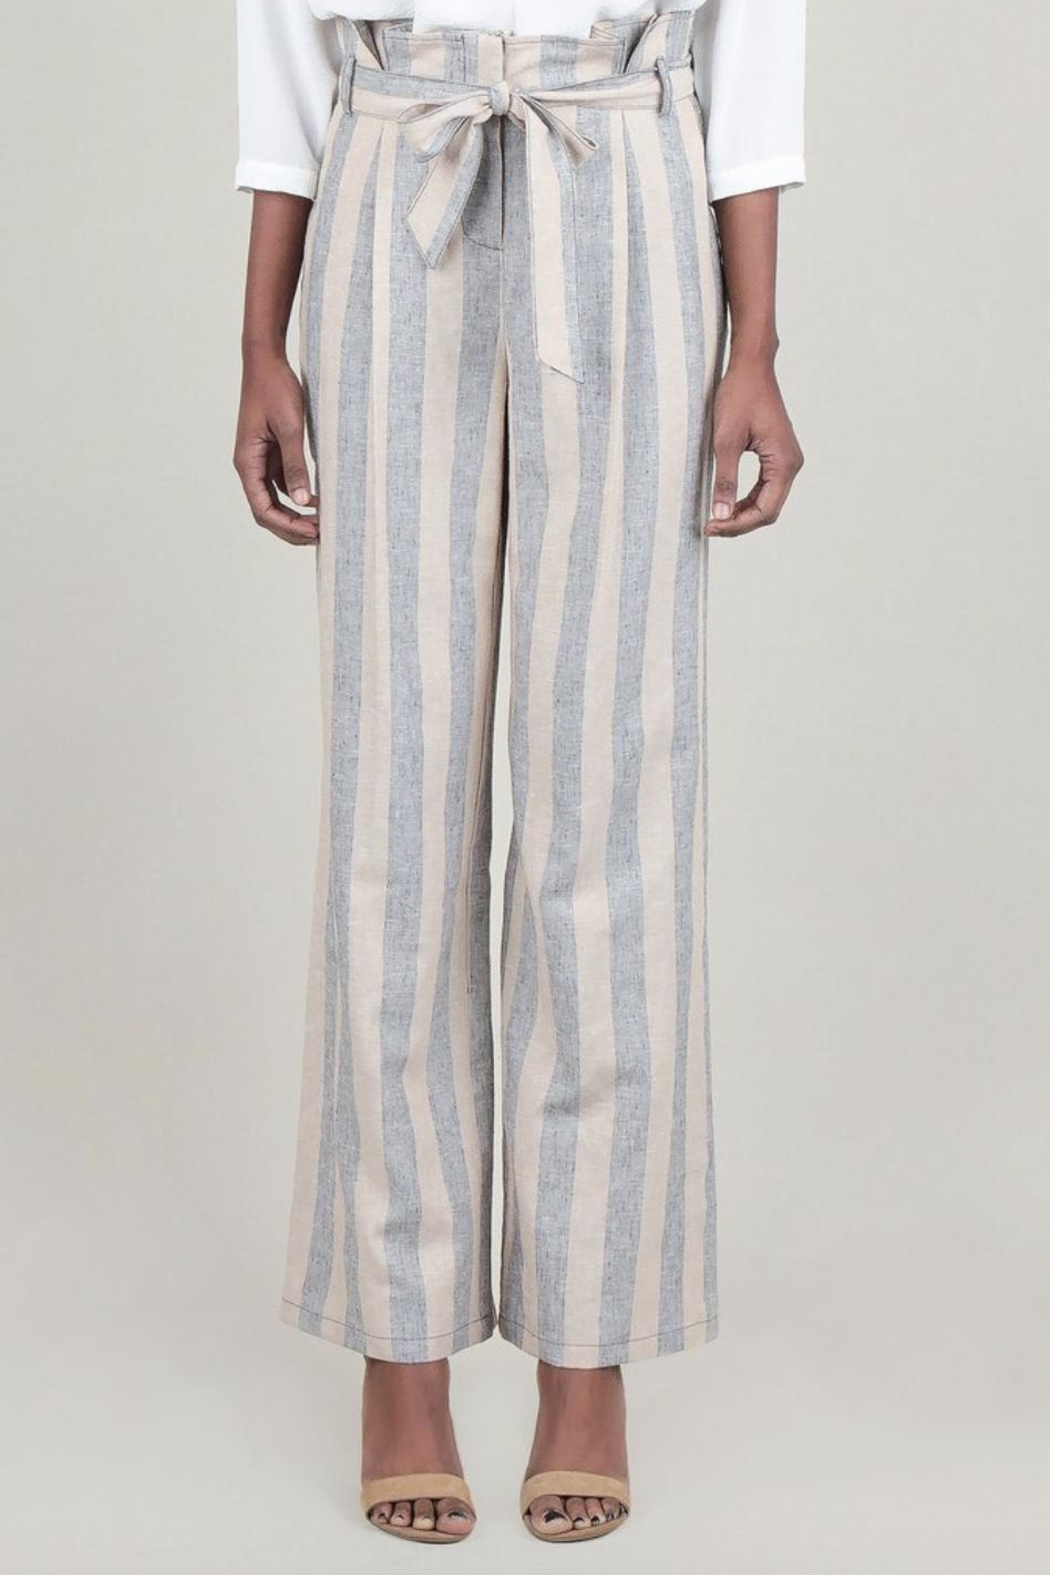 Current Air Striped Linen Pant - Main Image